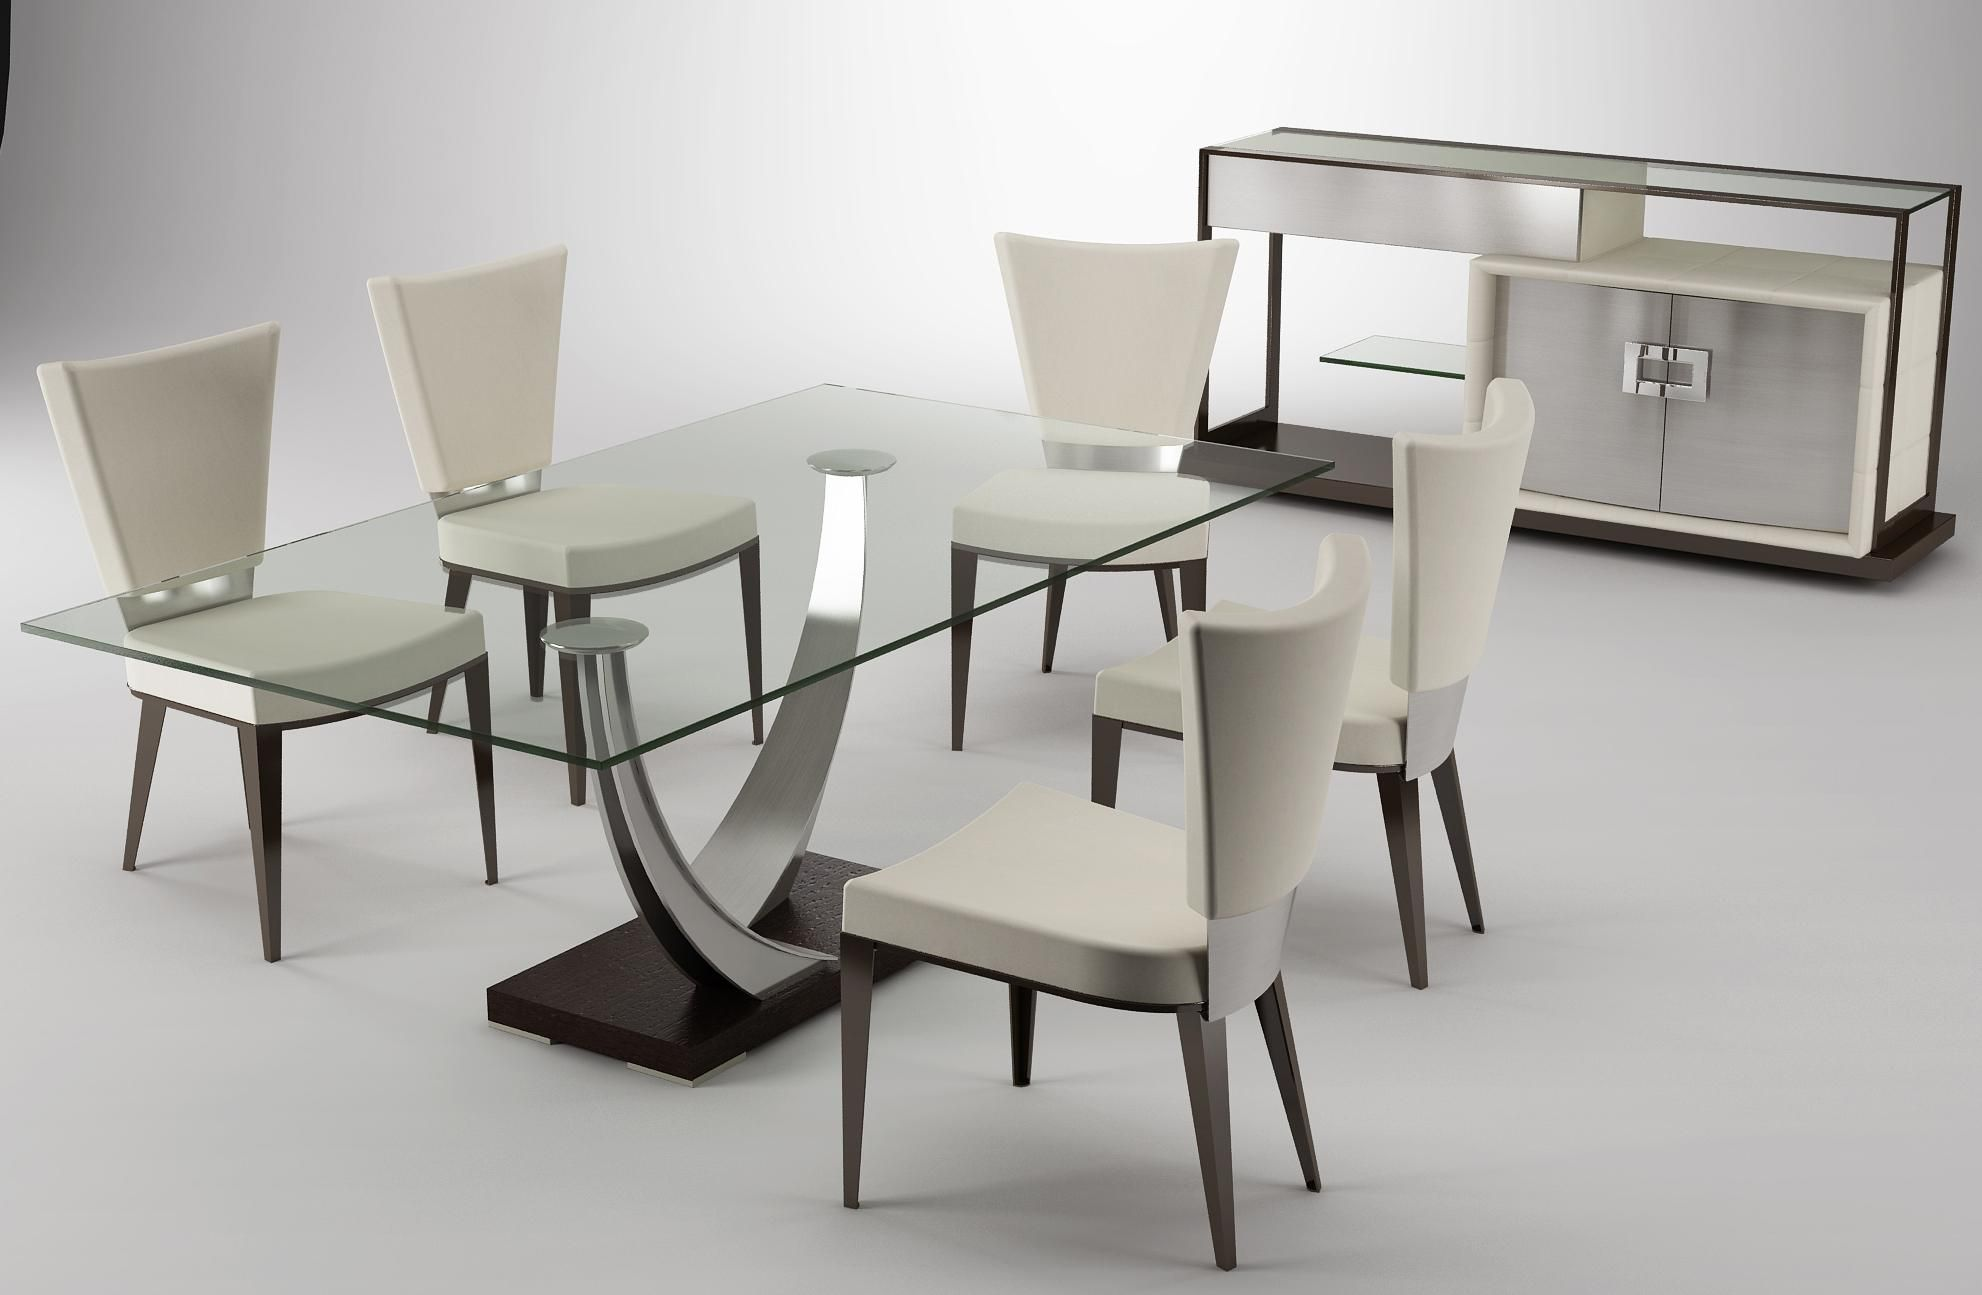 amazing modern stylish dining room table set designs elite tangent glass top furniture stores with tables rooms n